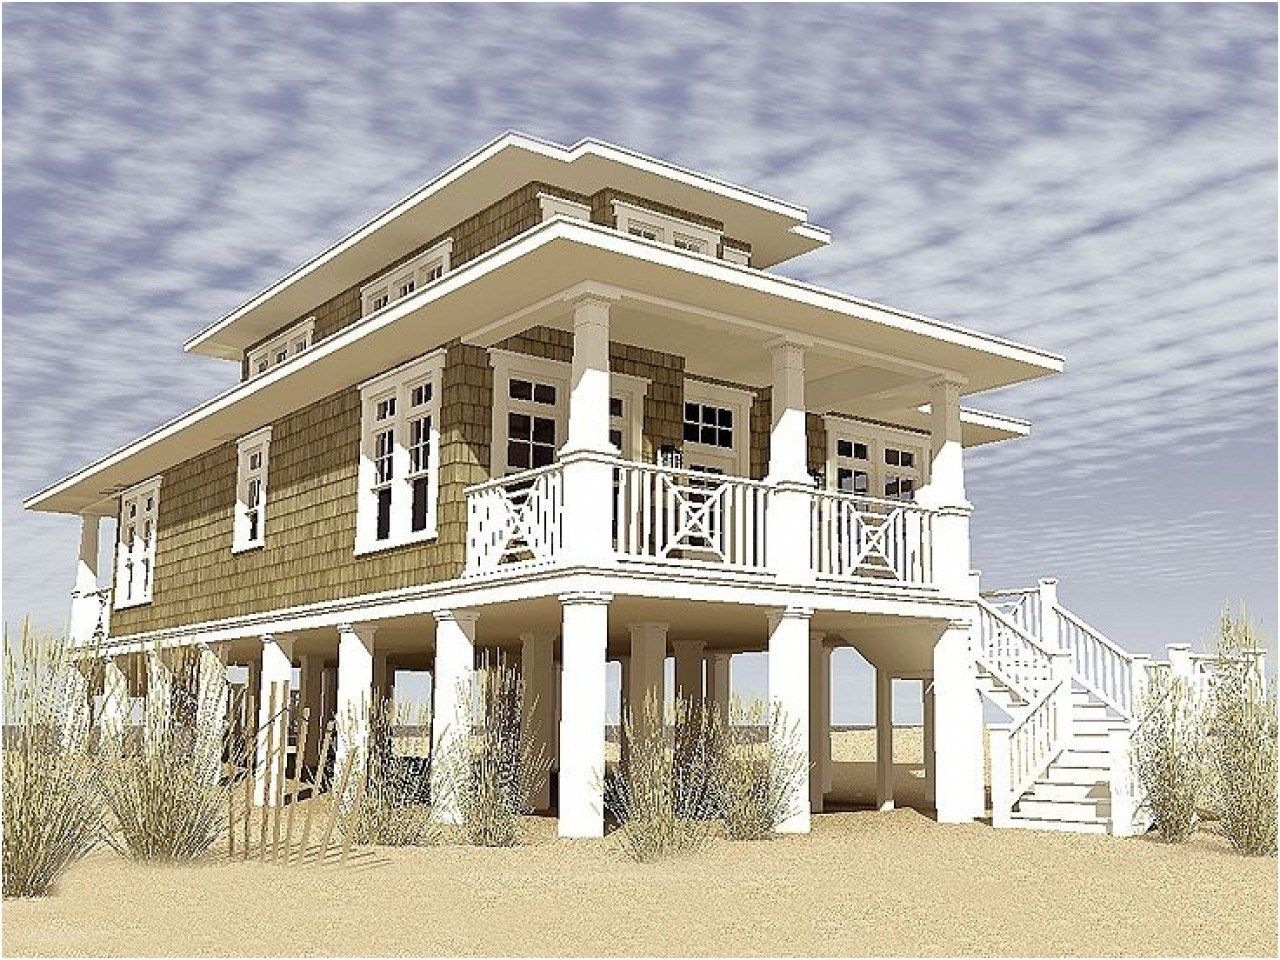 Narrow Beach House Designs Narrow Lot Beach House Plans From Beach House Plans Small Beach Houses Coastal House Plans Stilt House Plans